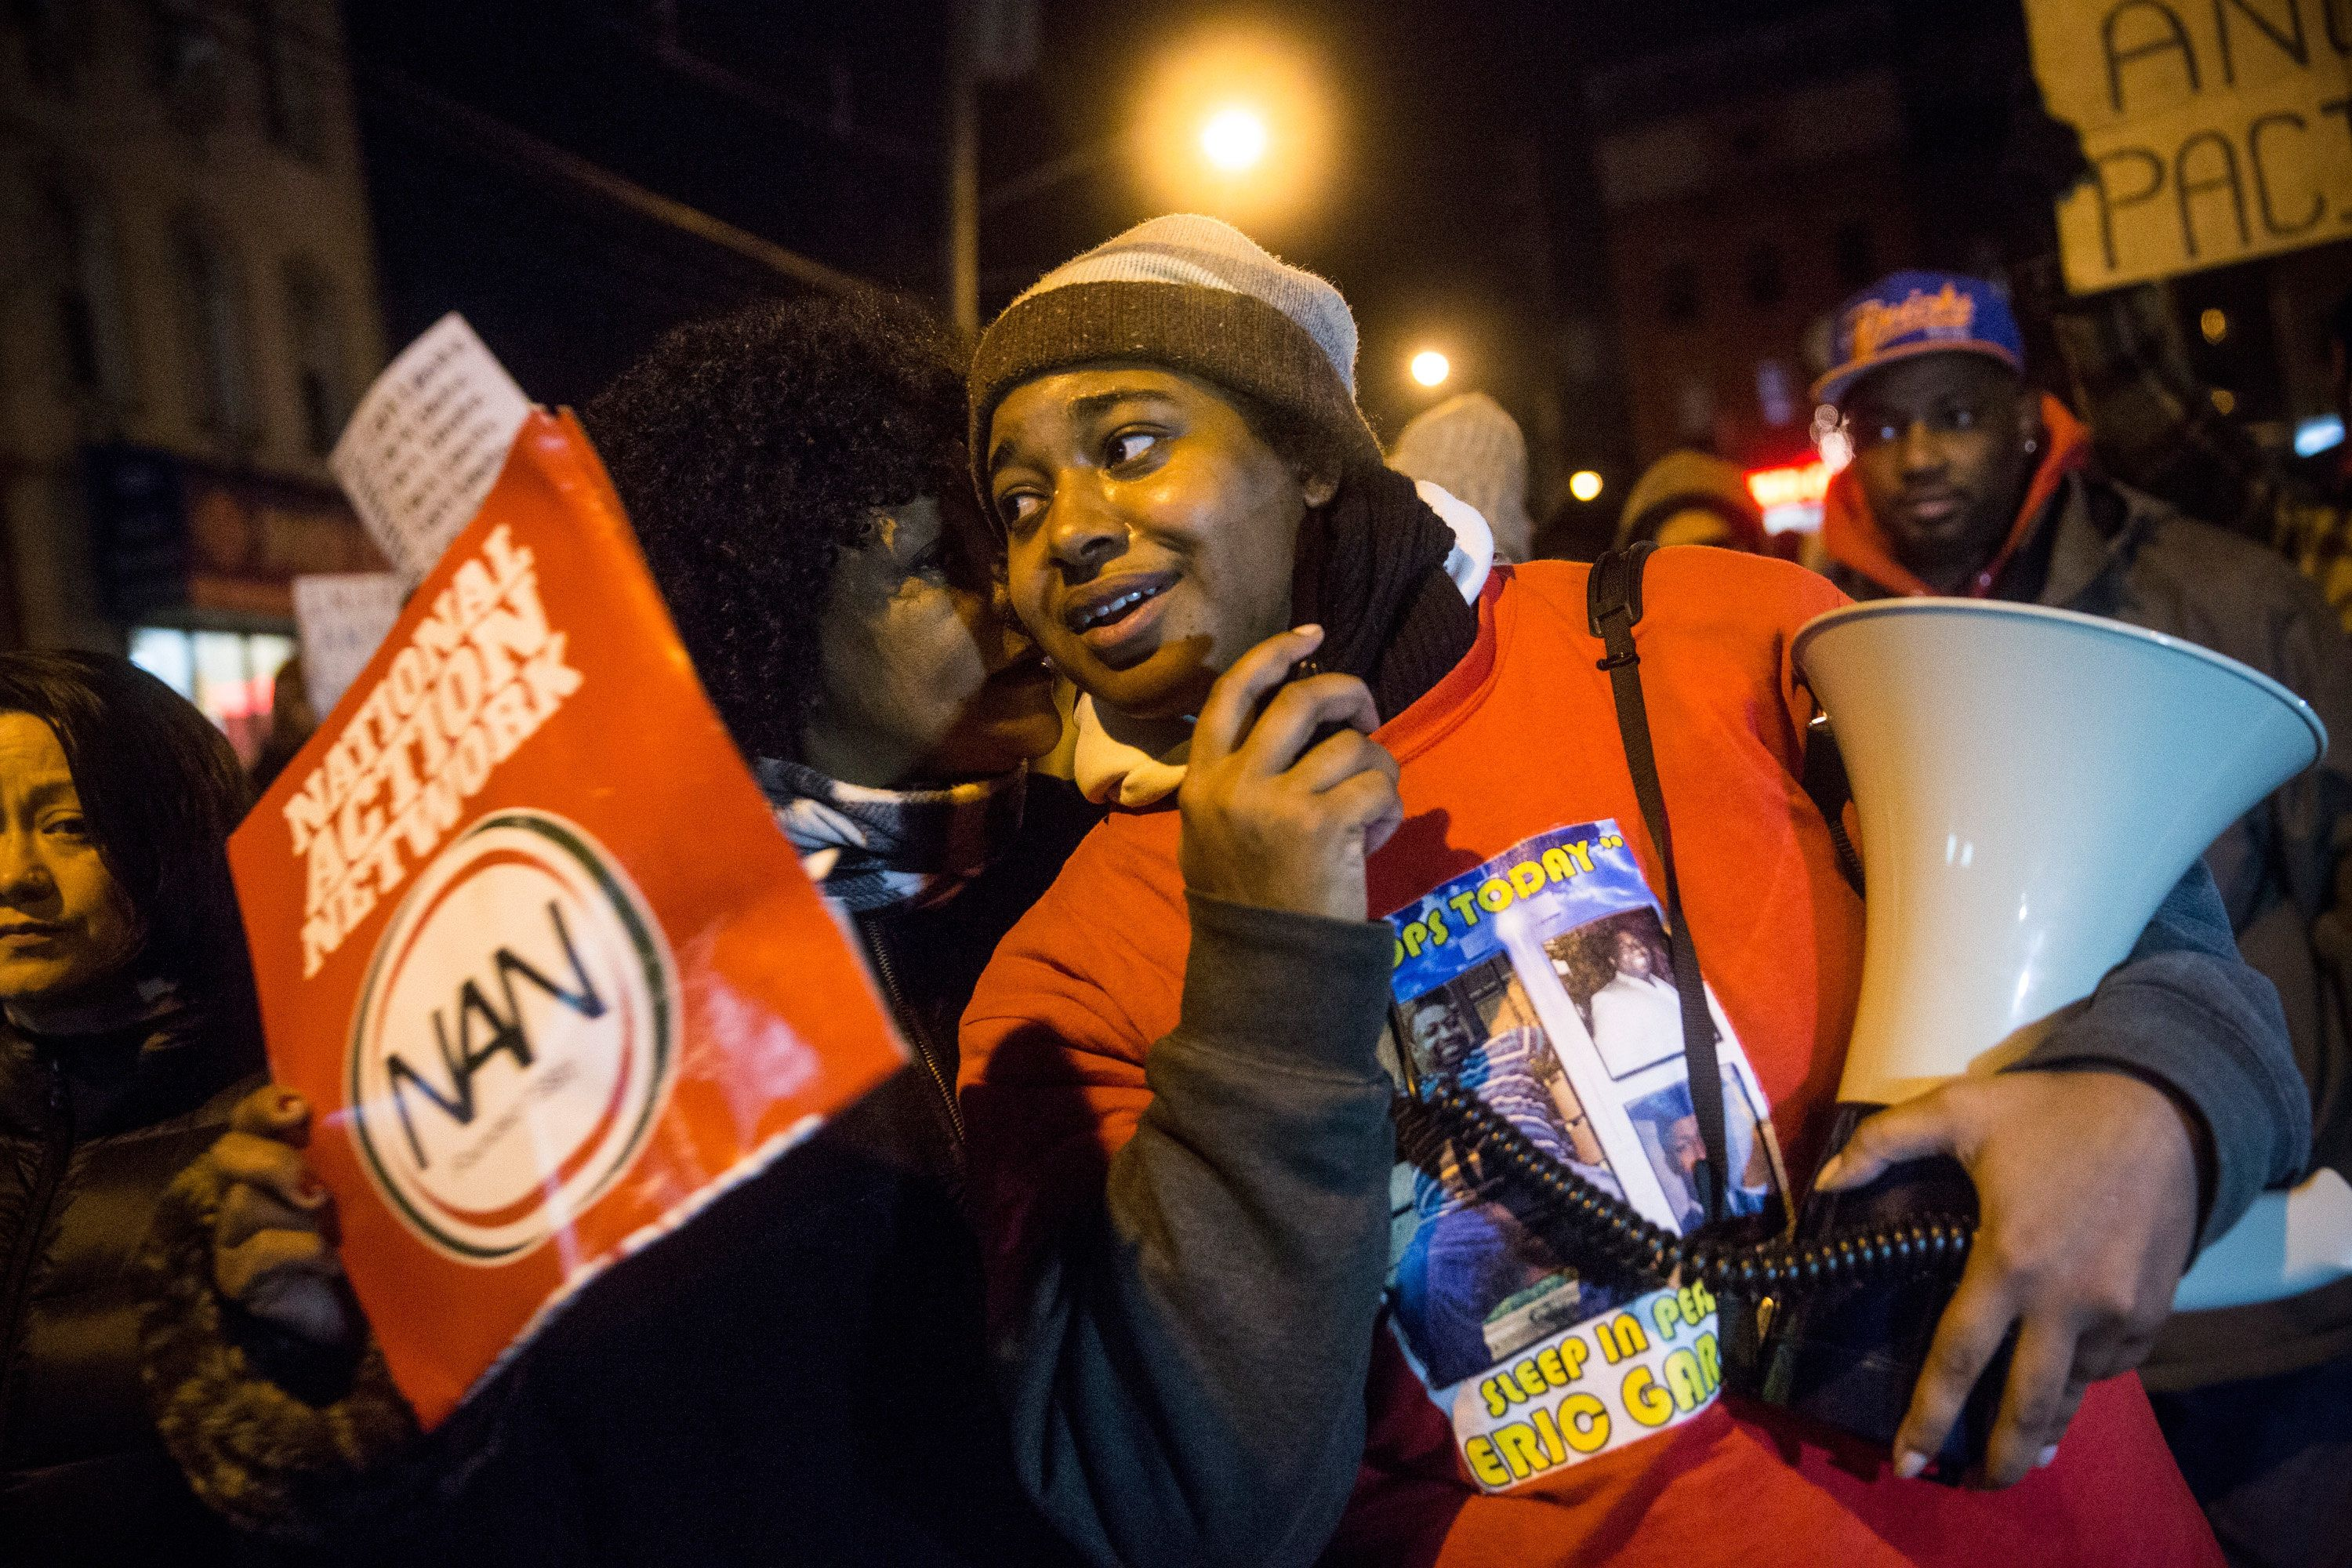 Eric Garner's Daughter, Erica, Dies After Suffering Massive Heart Attack